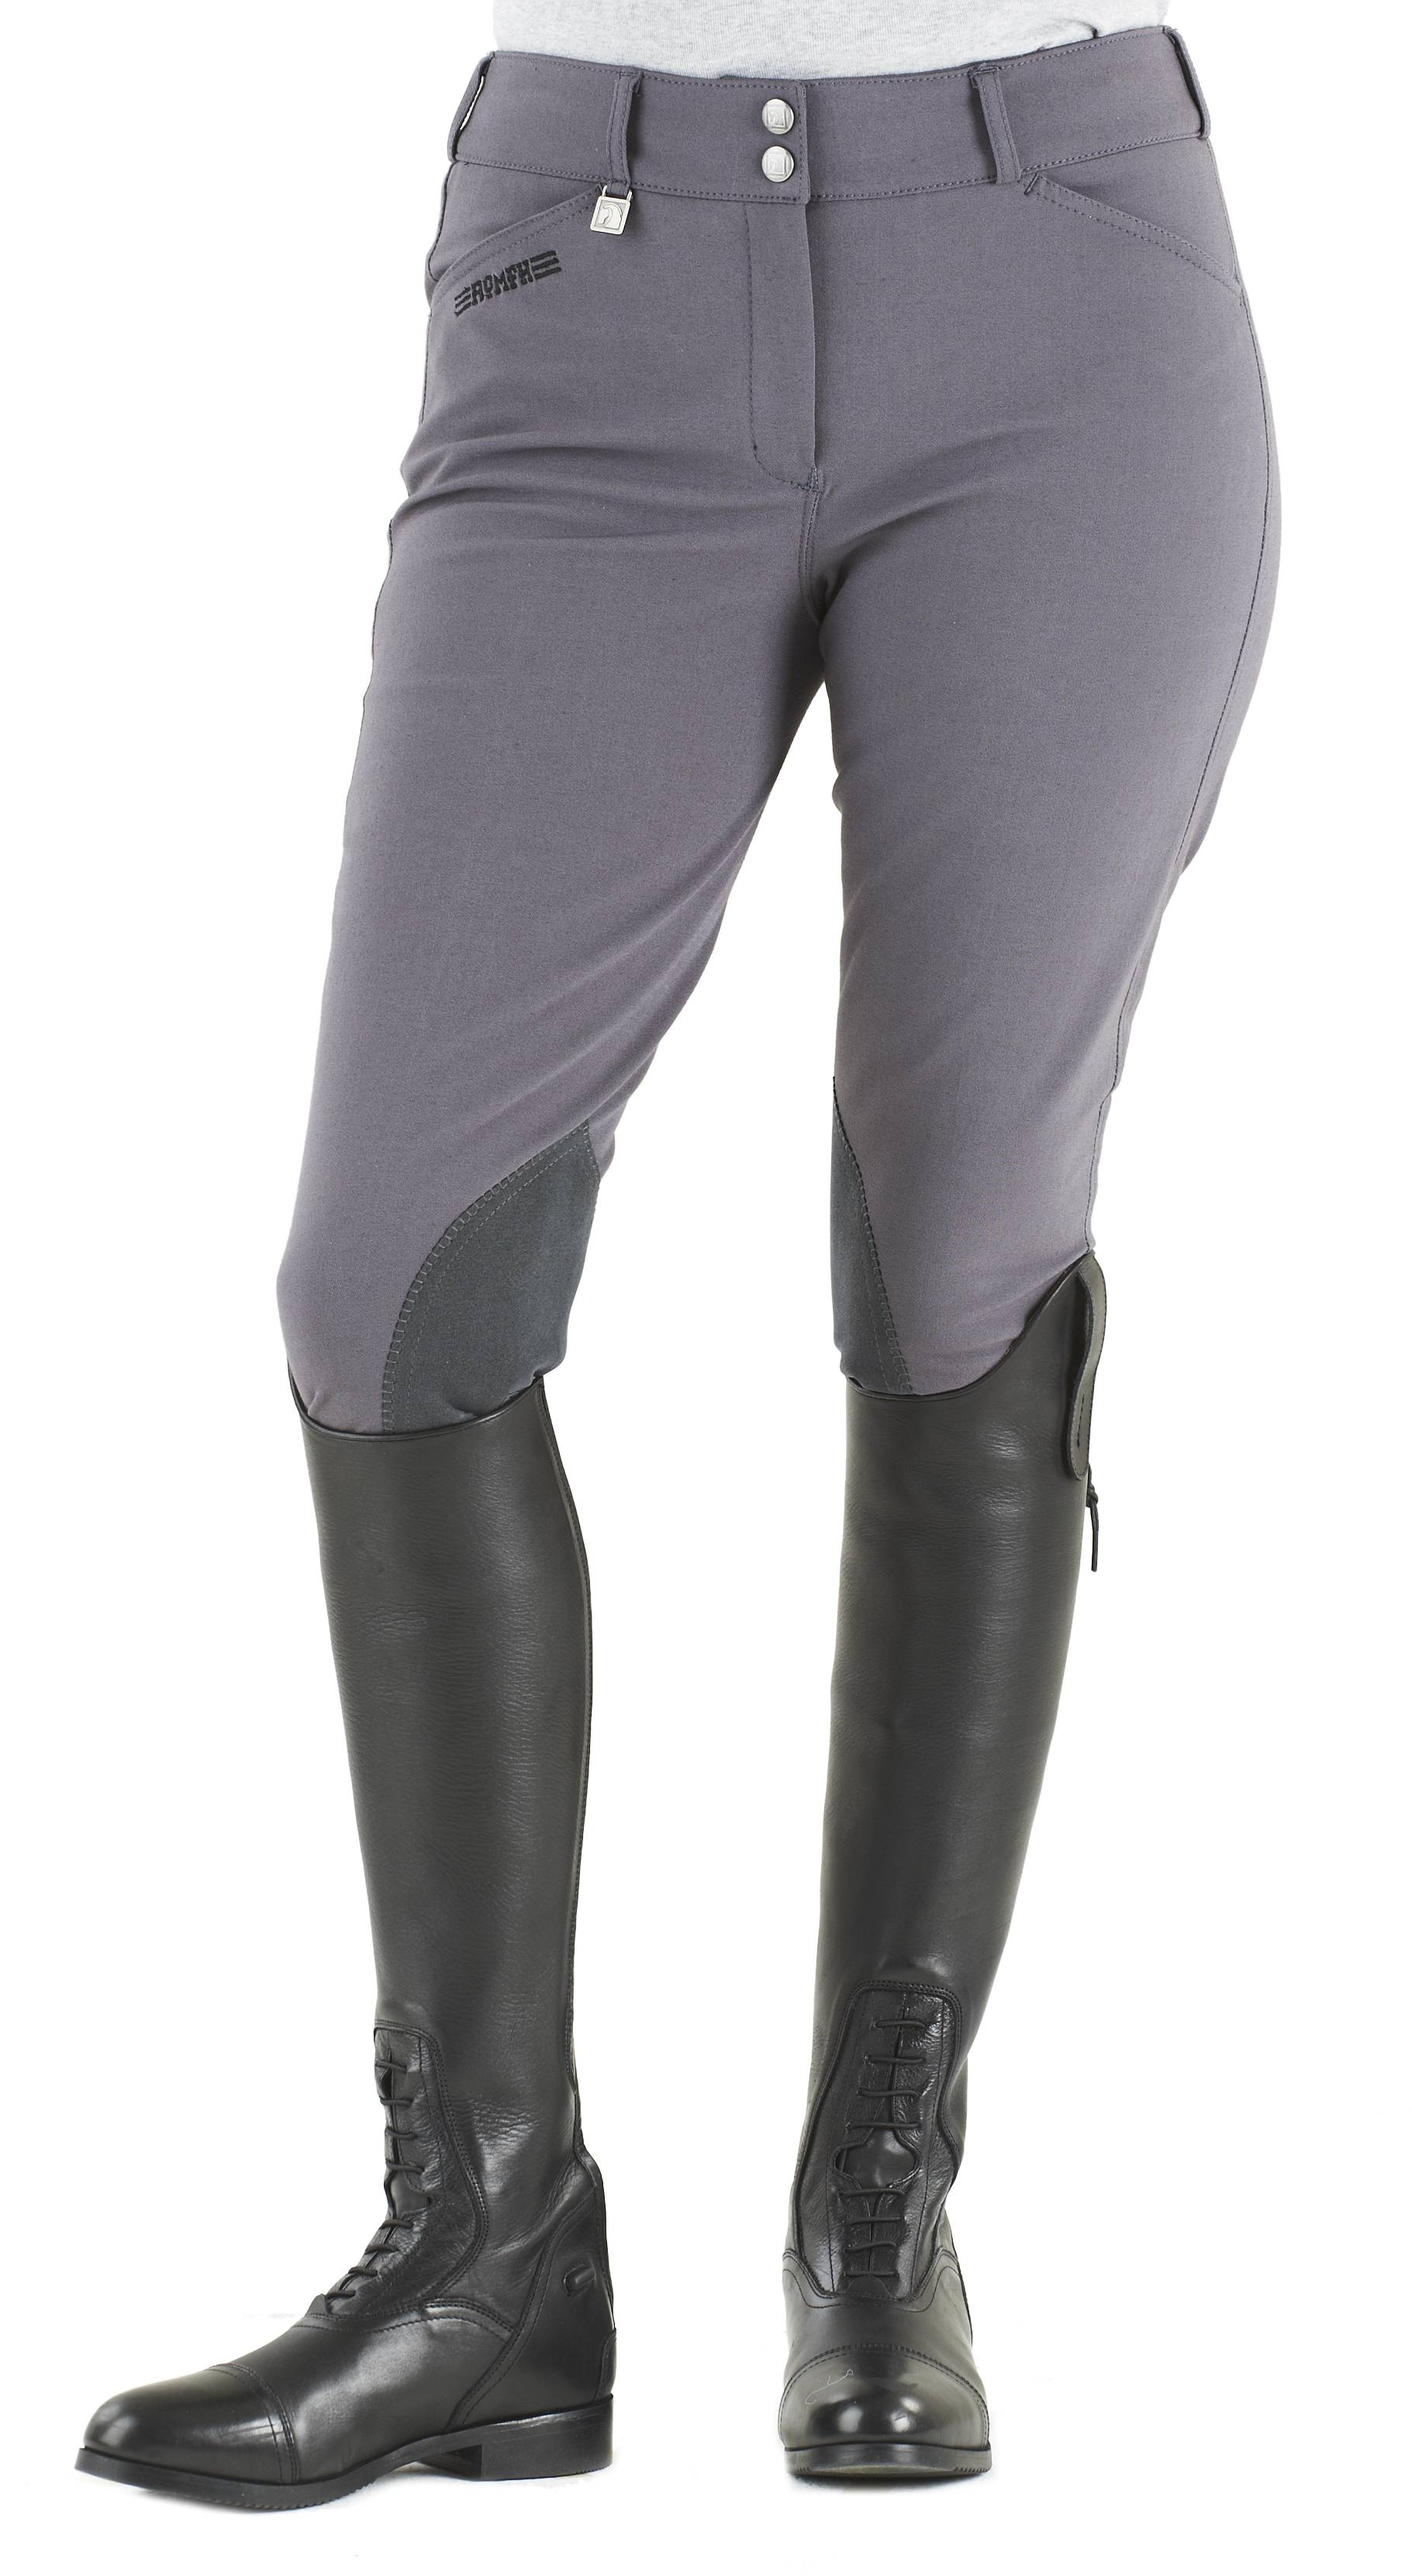 ROMFH Champion 2-Button Euroseat Breech